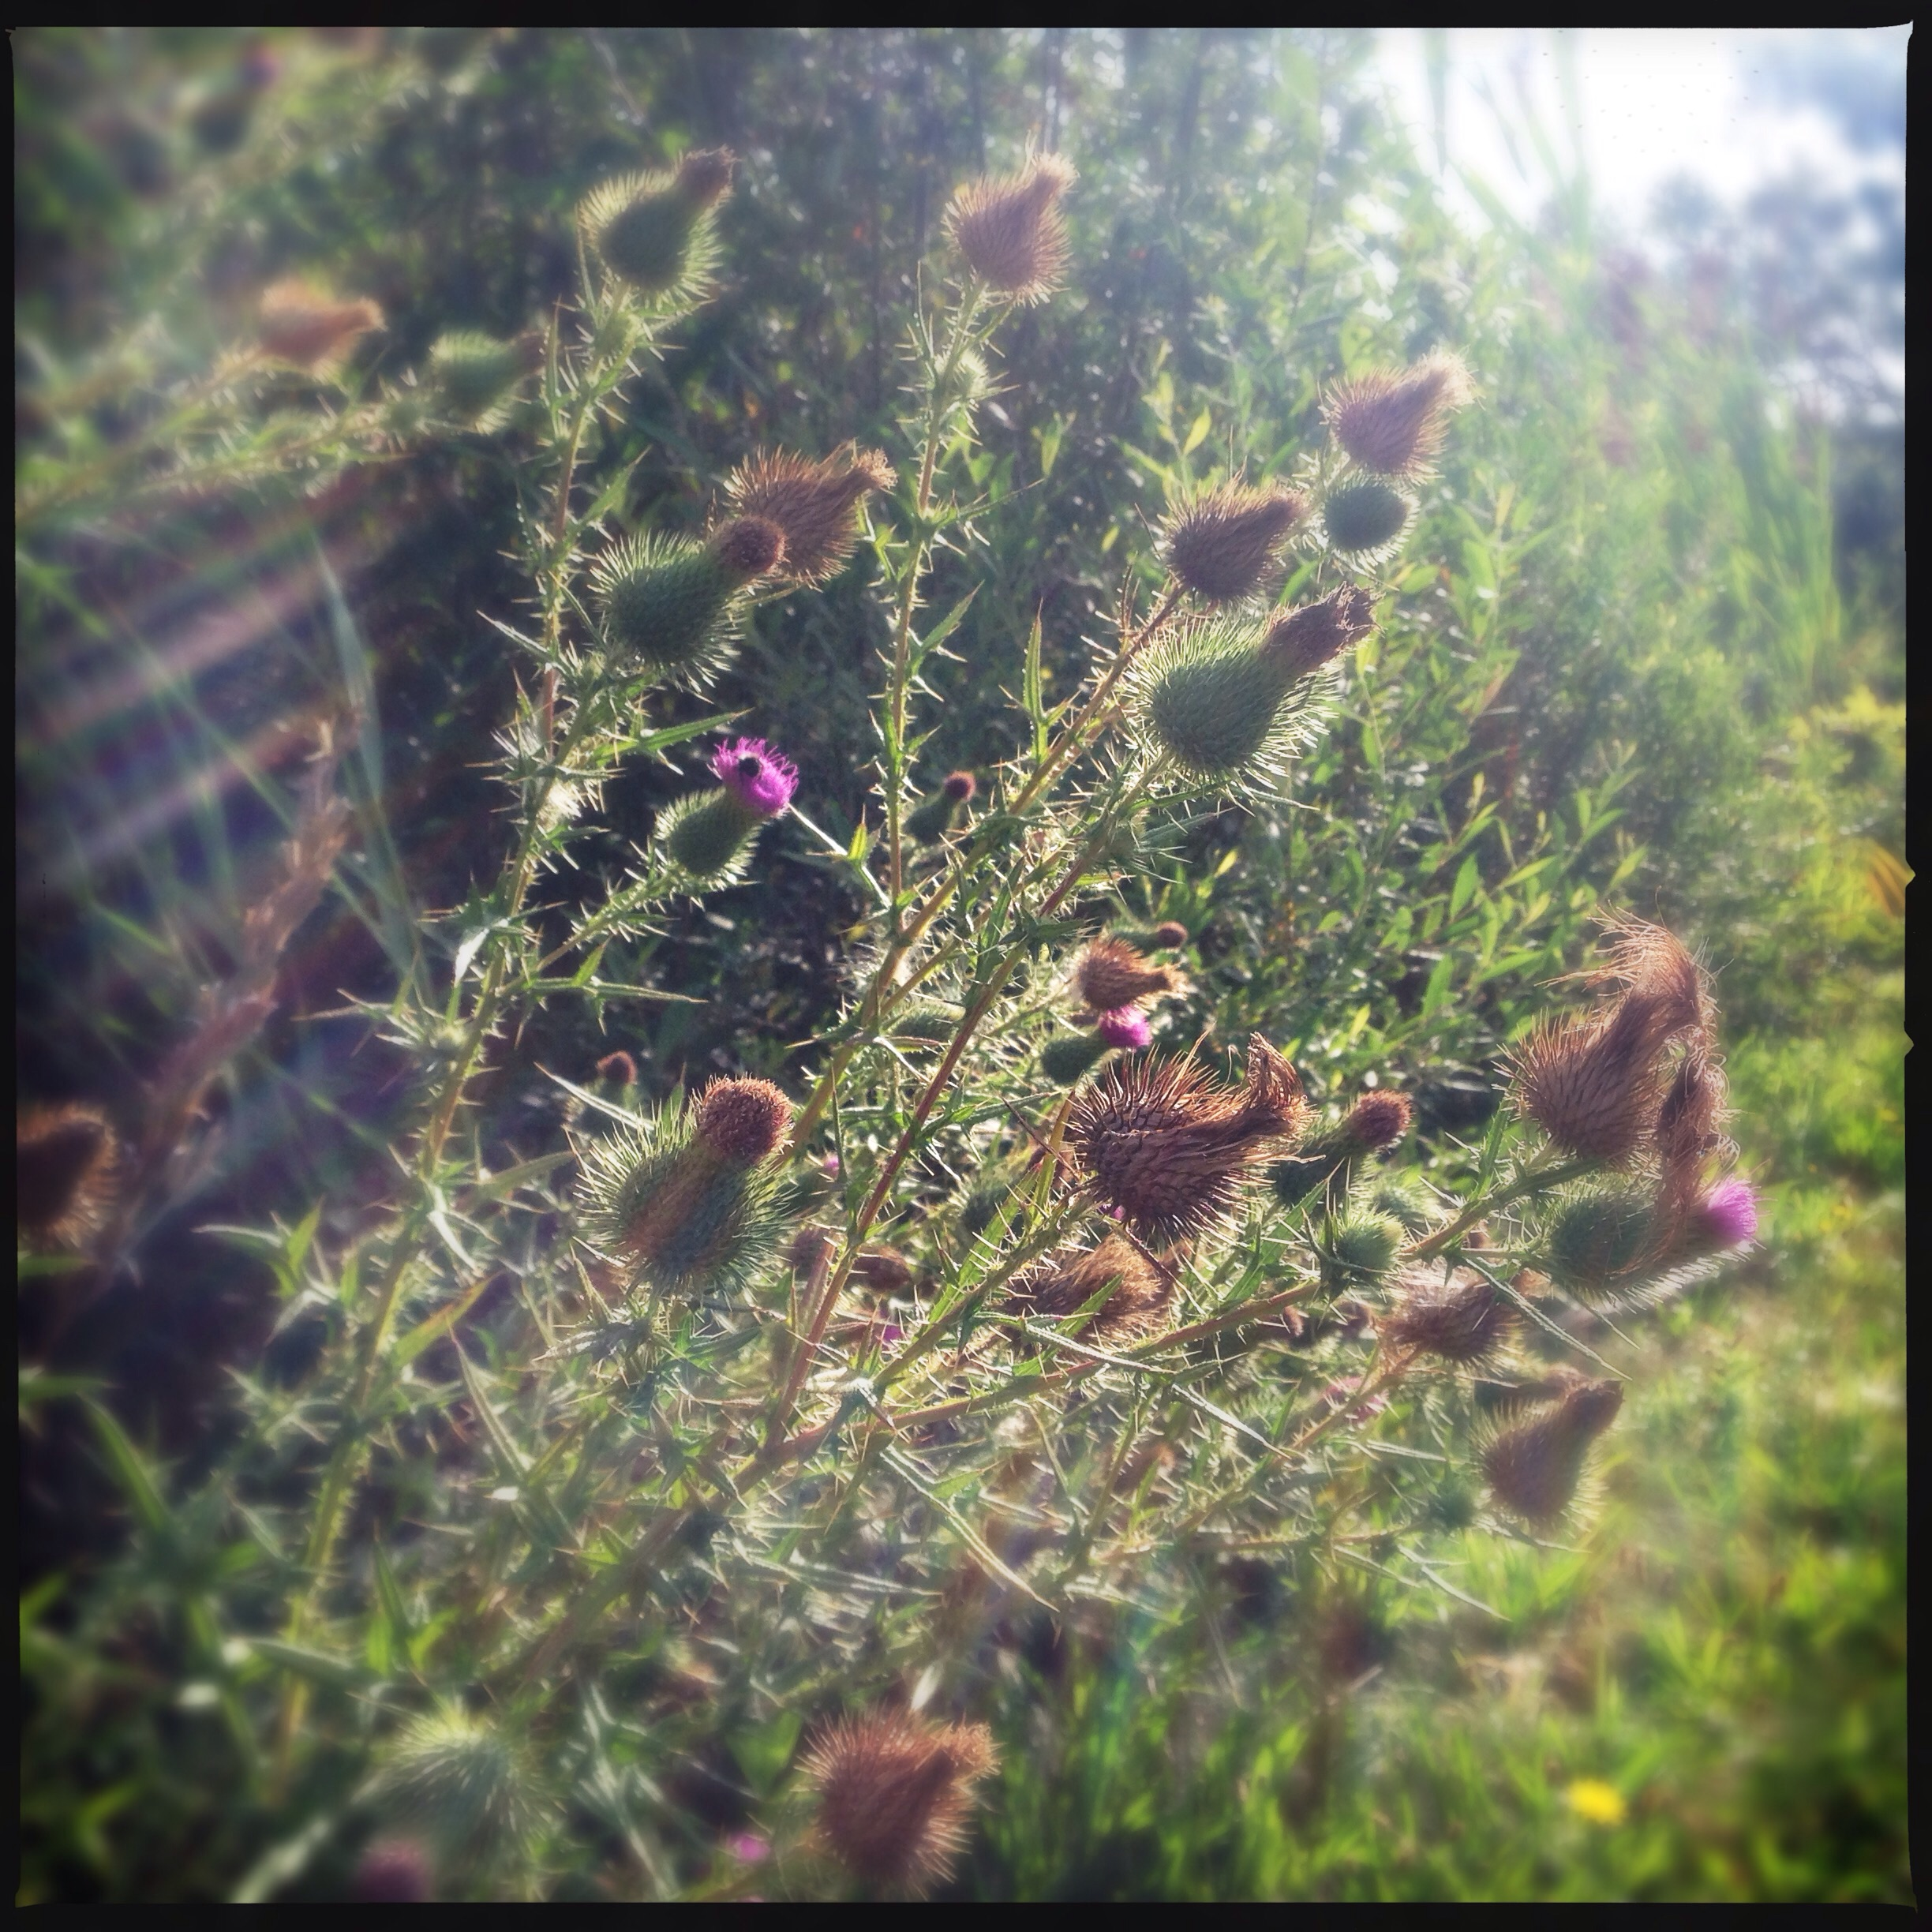 thistles in the sun